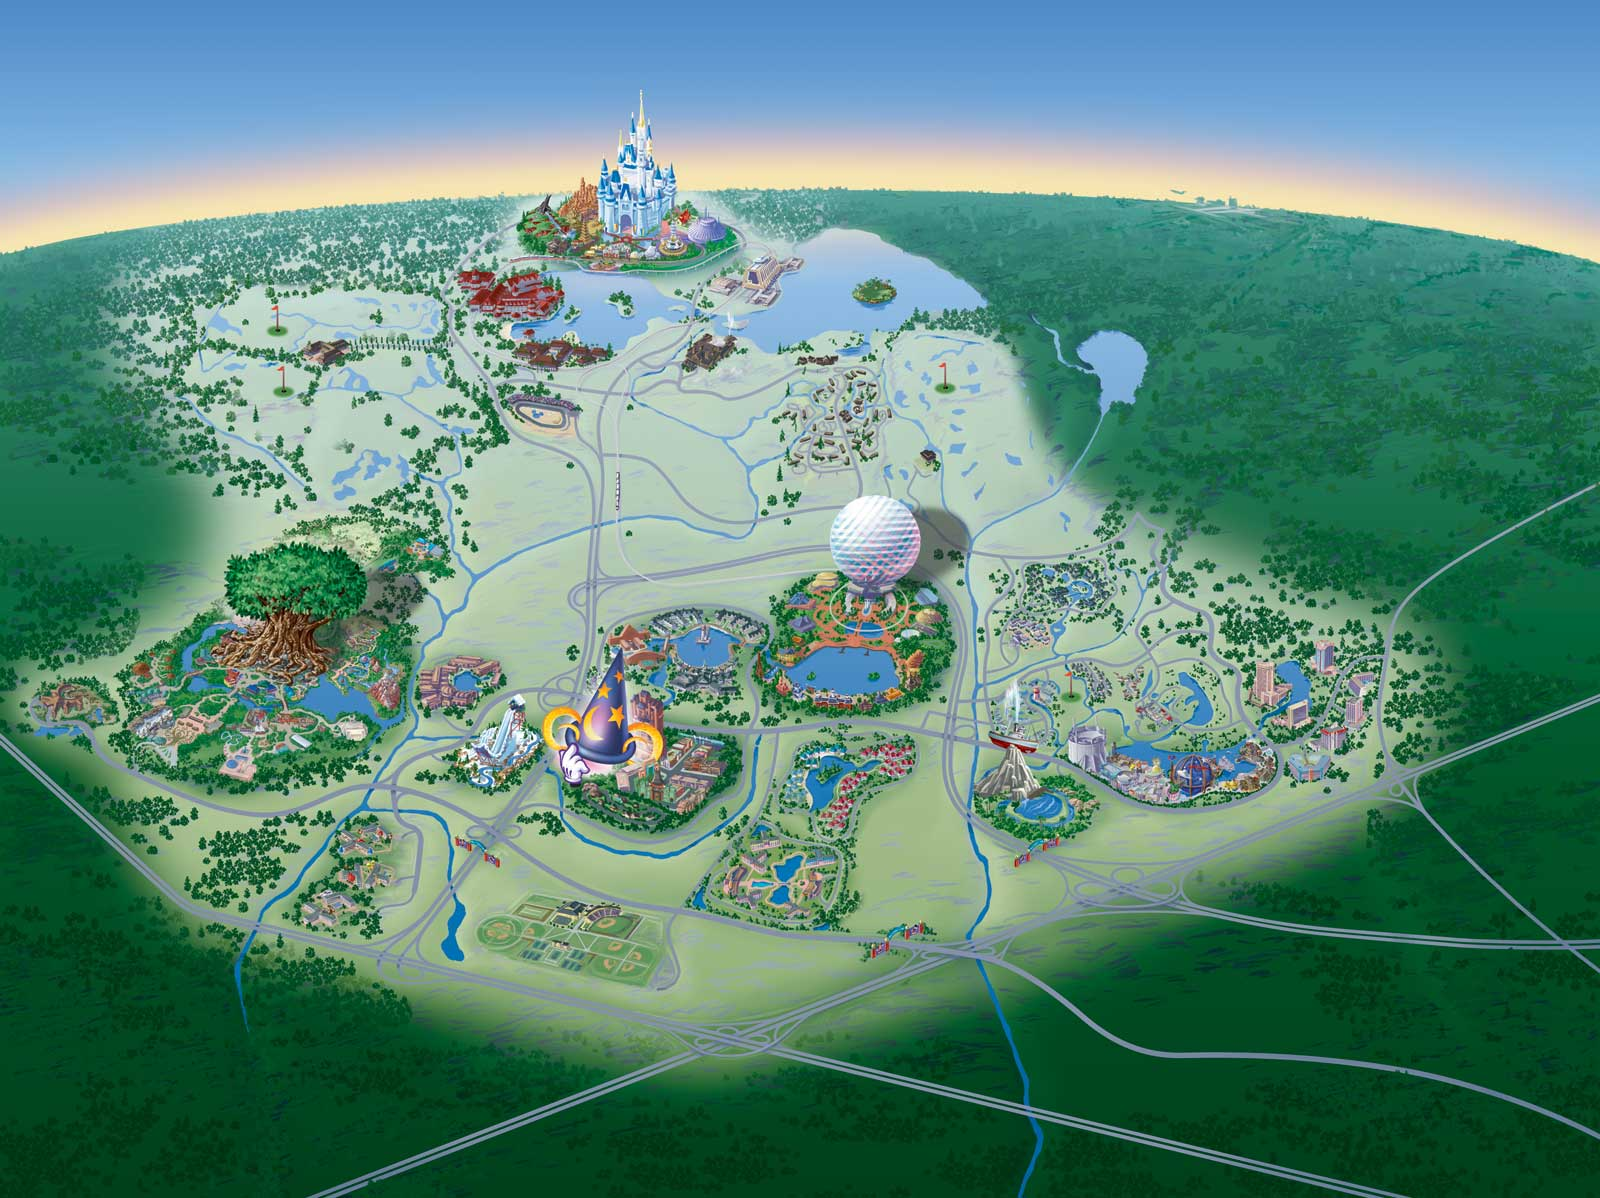 Disney Park Map Map of Walt Disney World Resort   wdwinfo.com